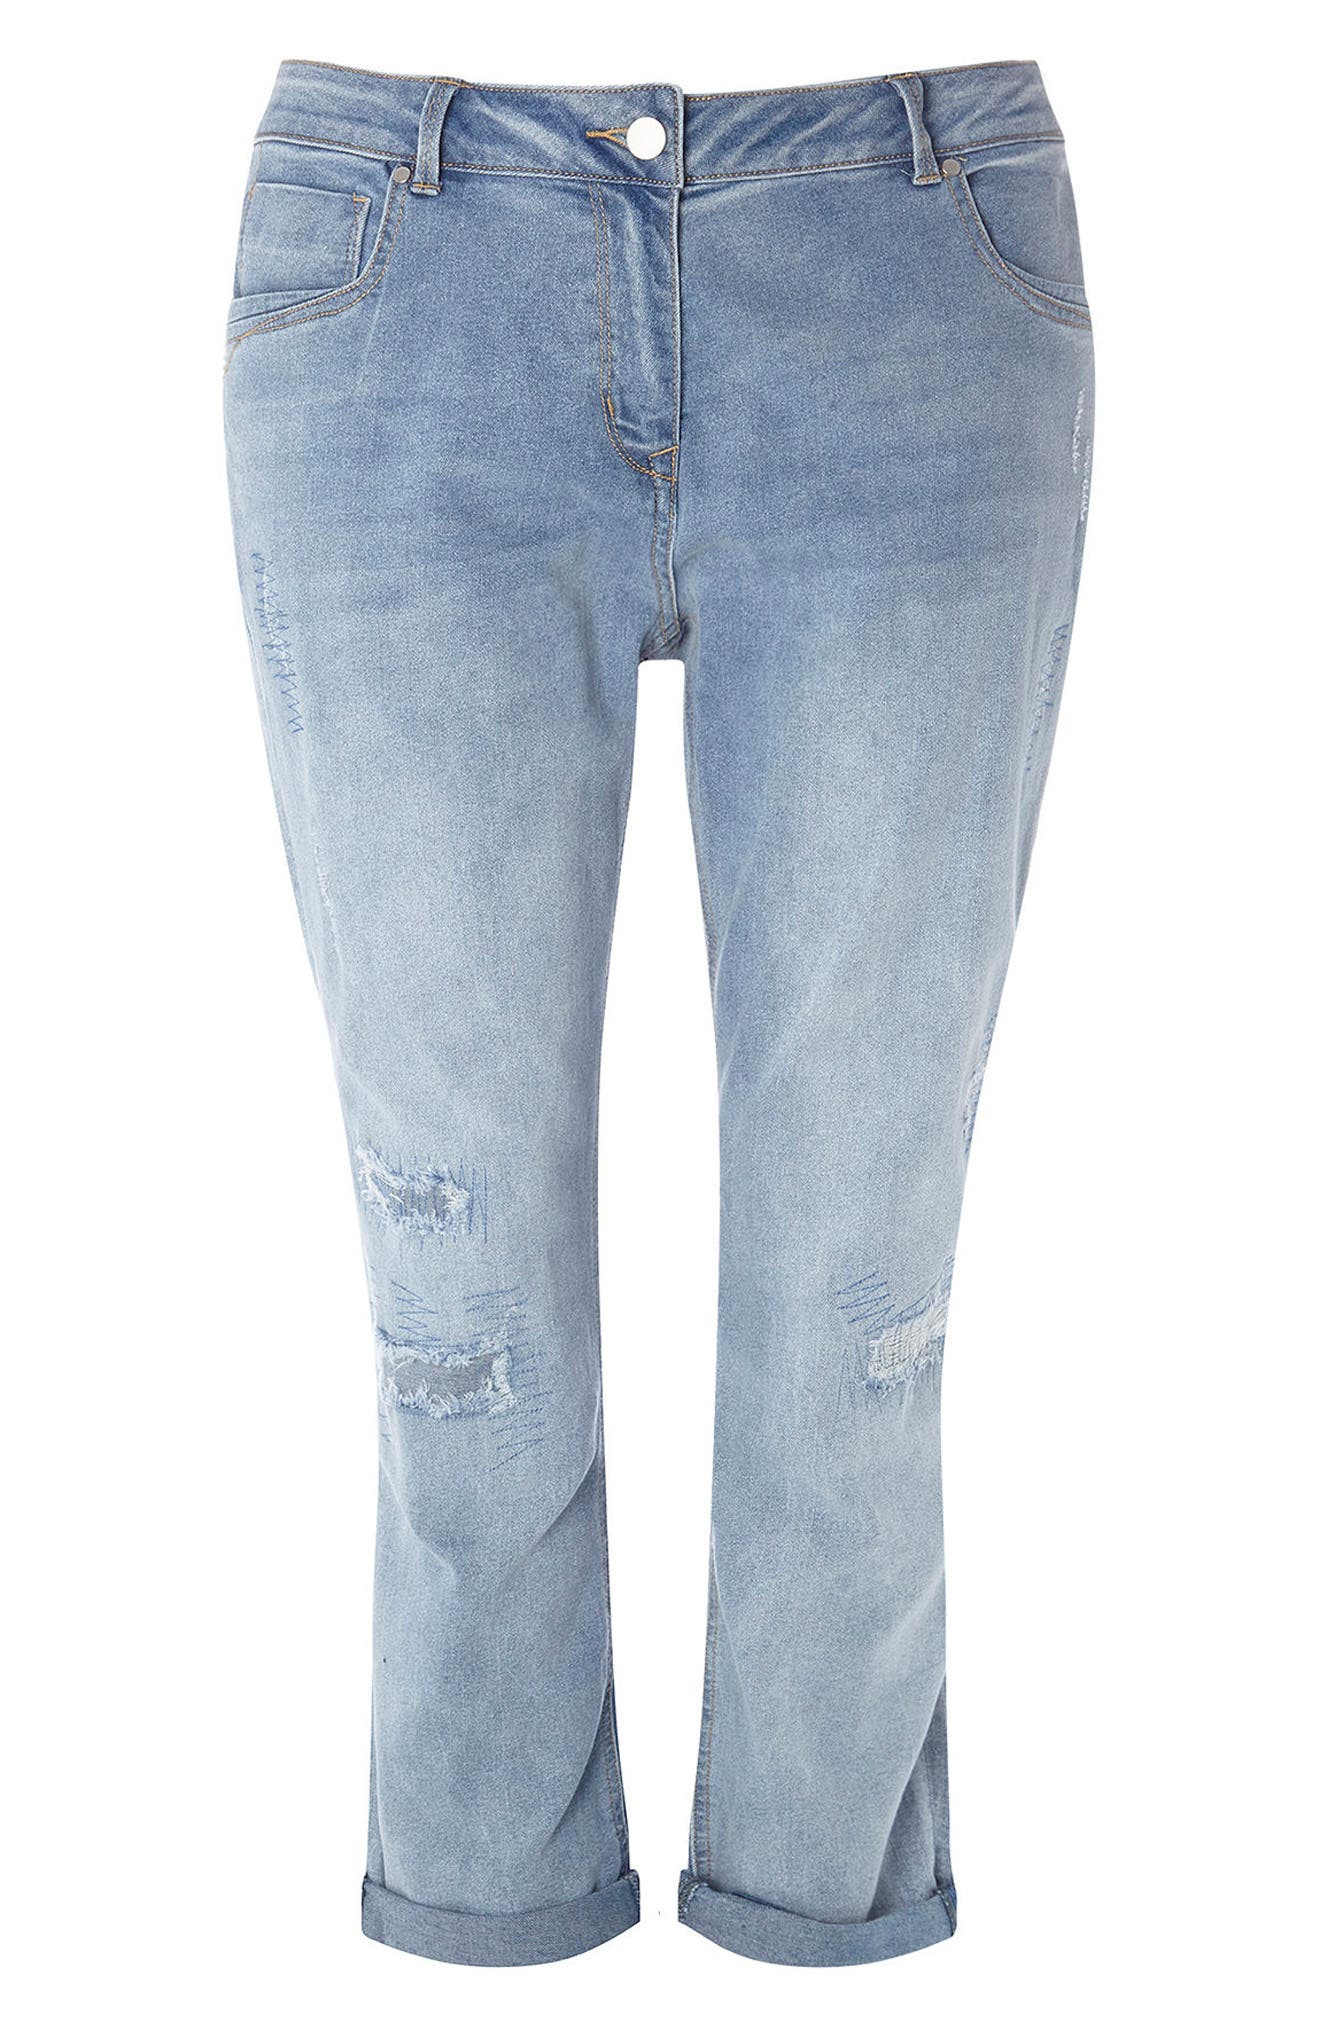 Evans Repaired Boyfriend Jeans (Plus Size)